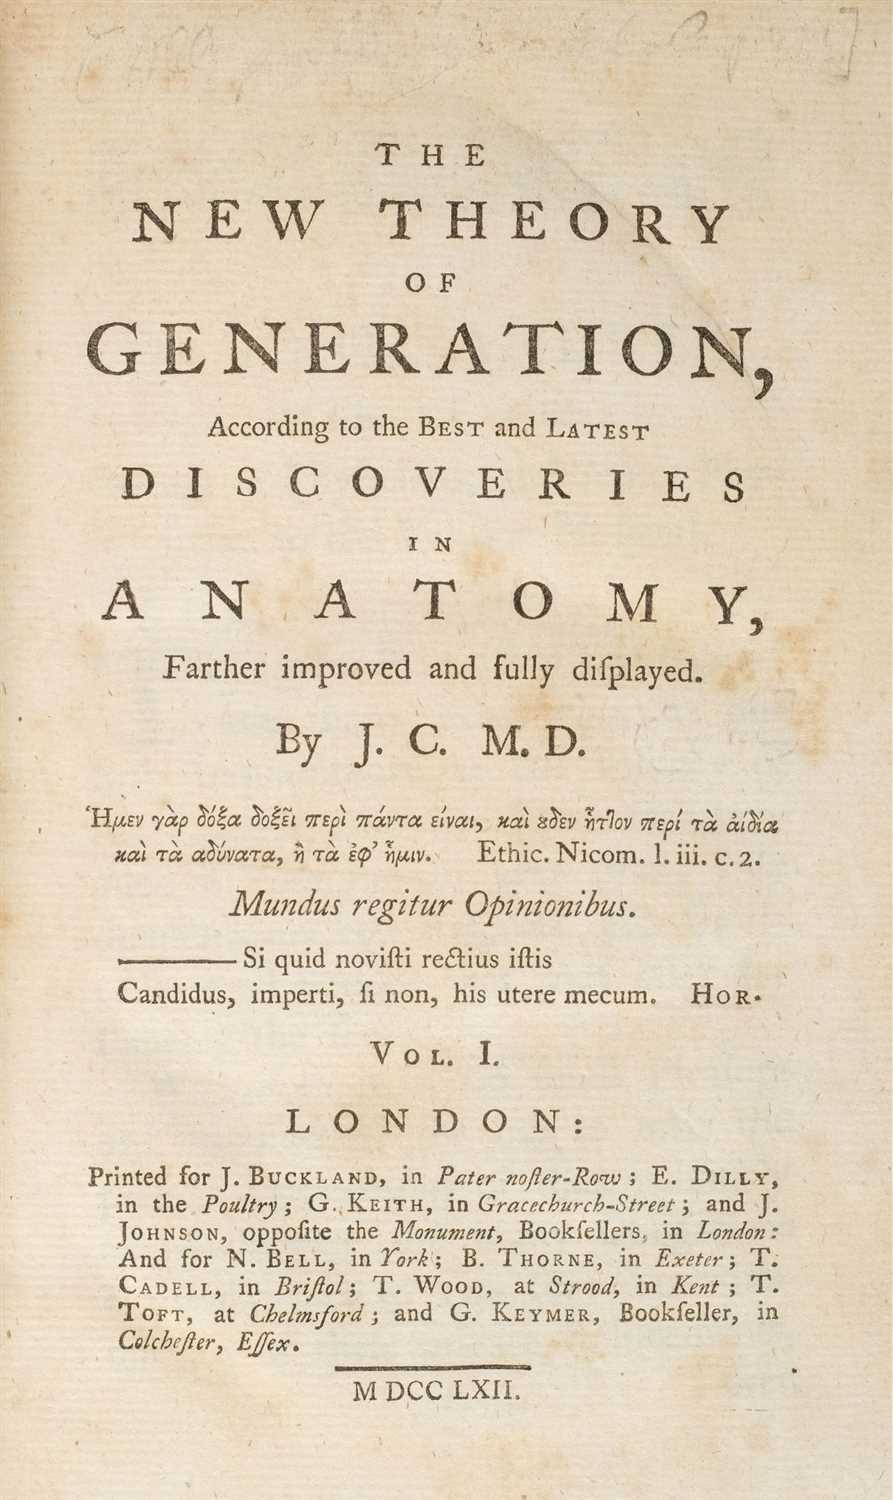 Lot 237 - Cook (John). The New Theory of Generation, 1762